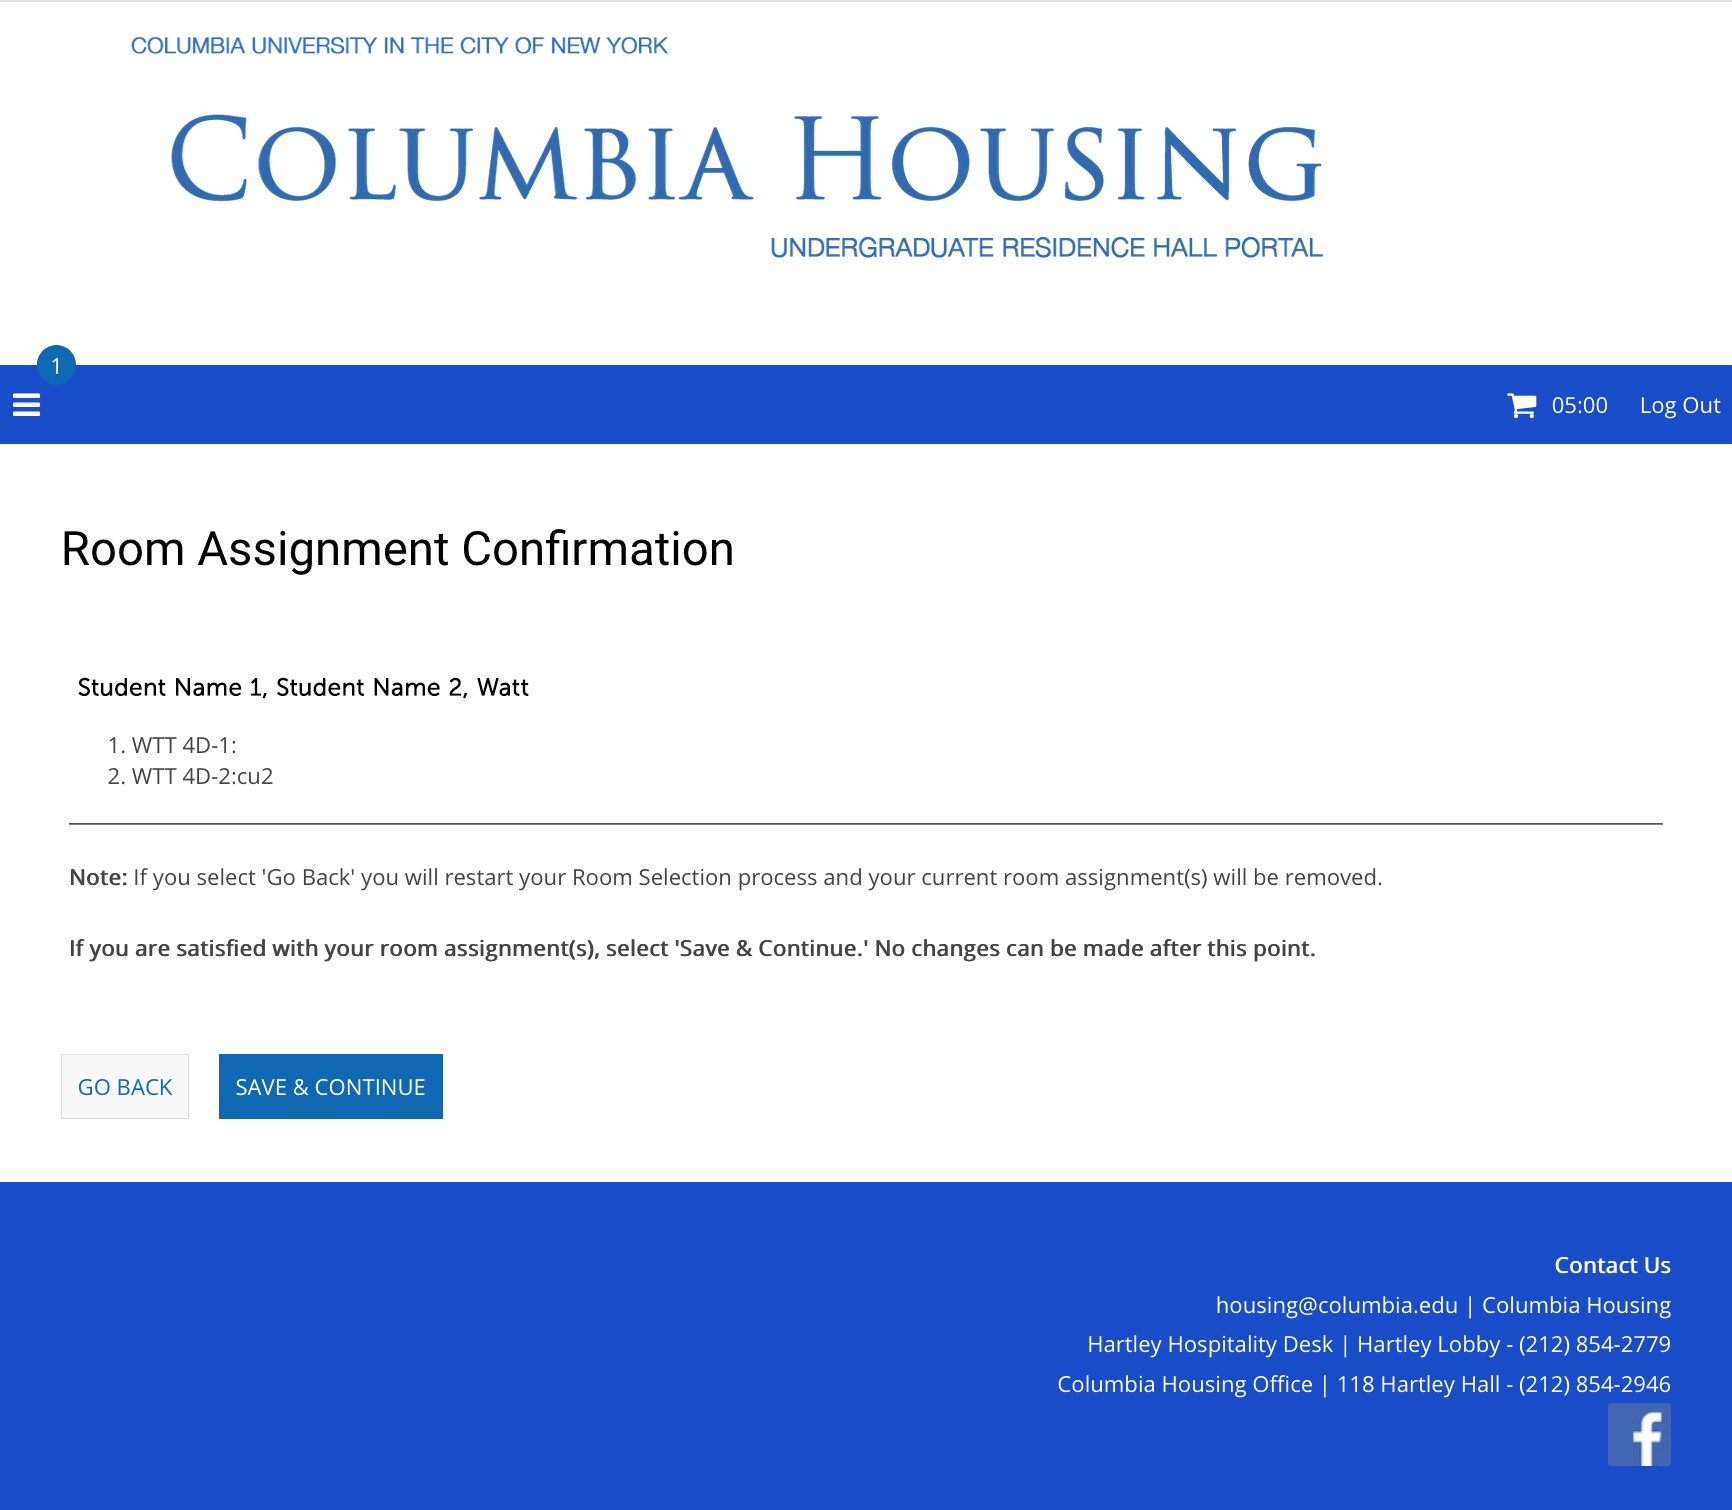 Step 4: Room Assignment Confirmation (Group Example)